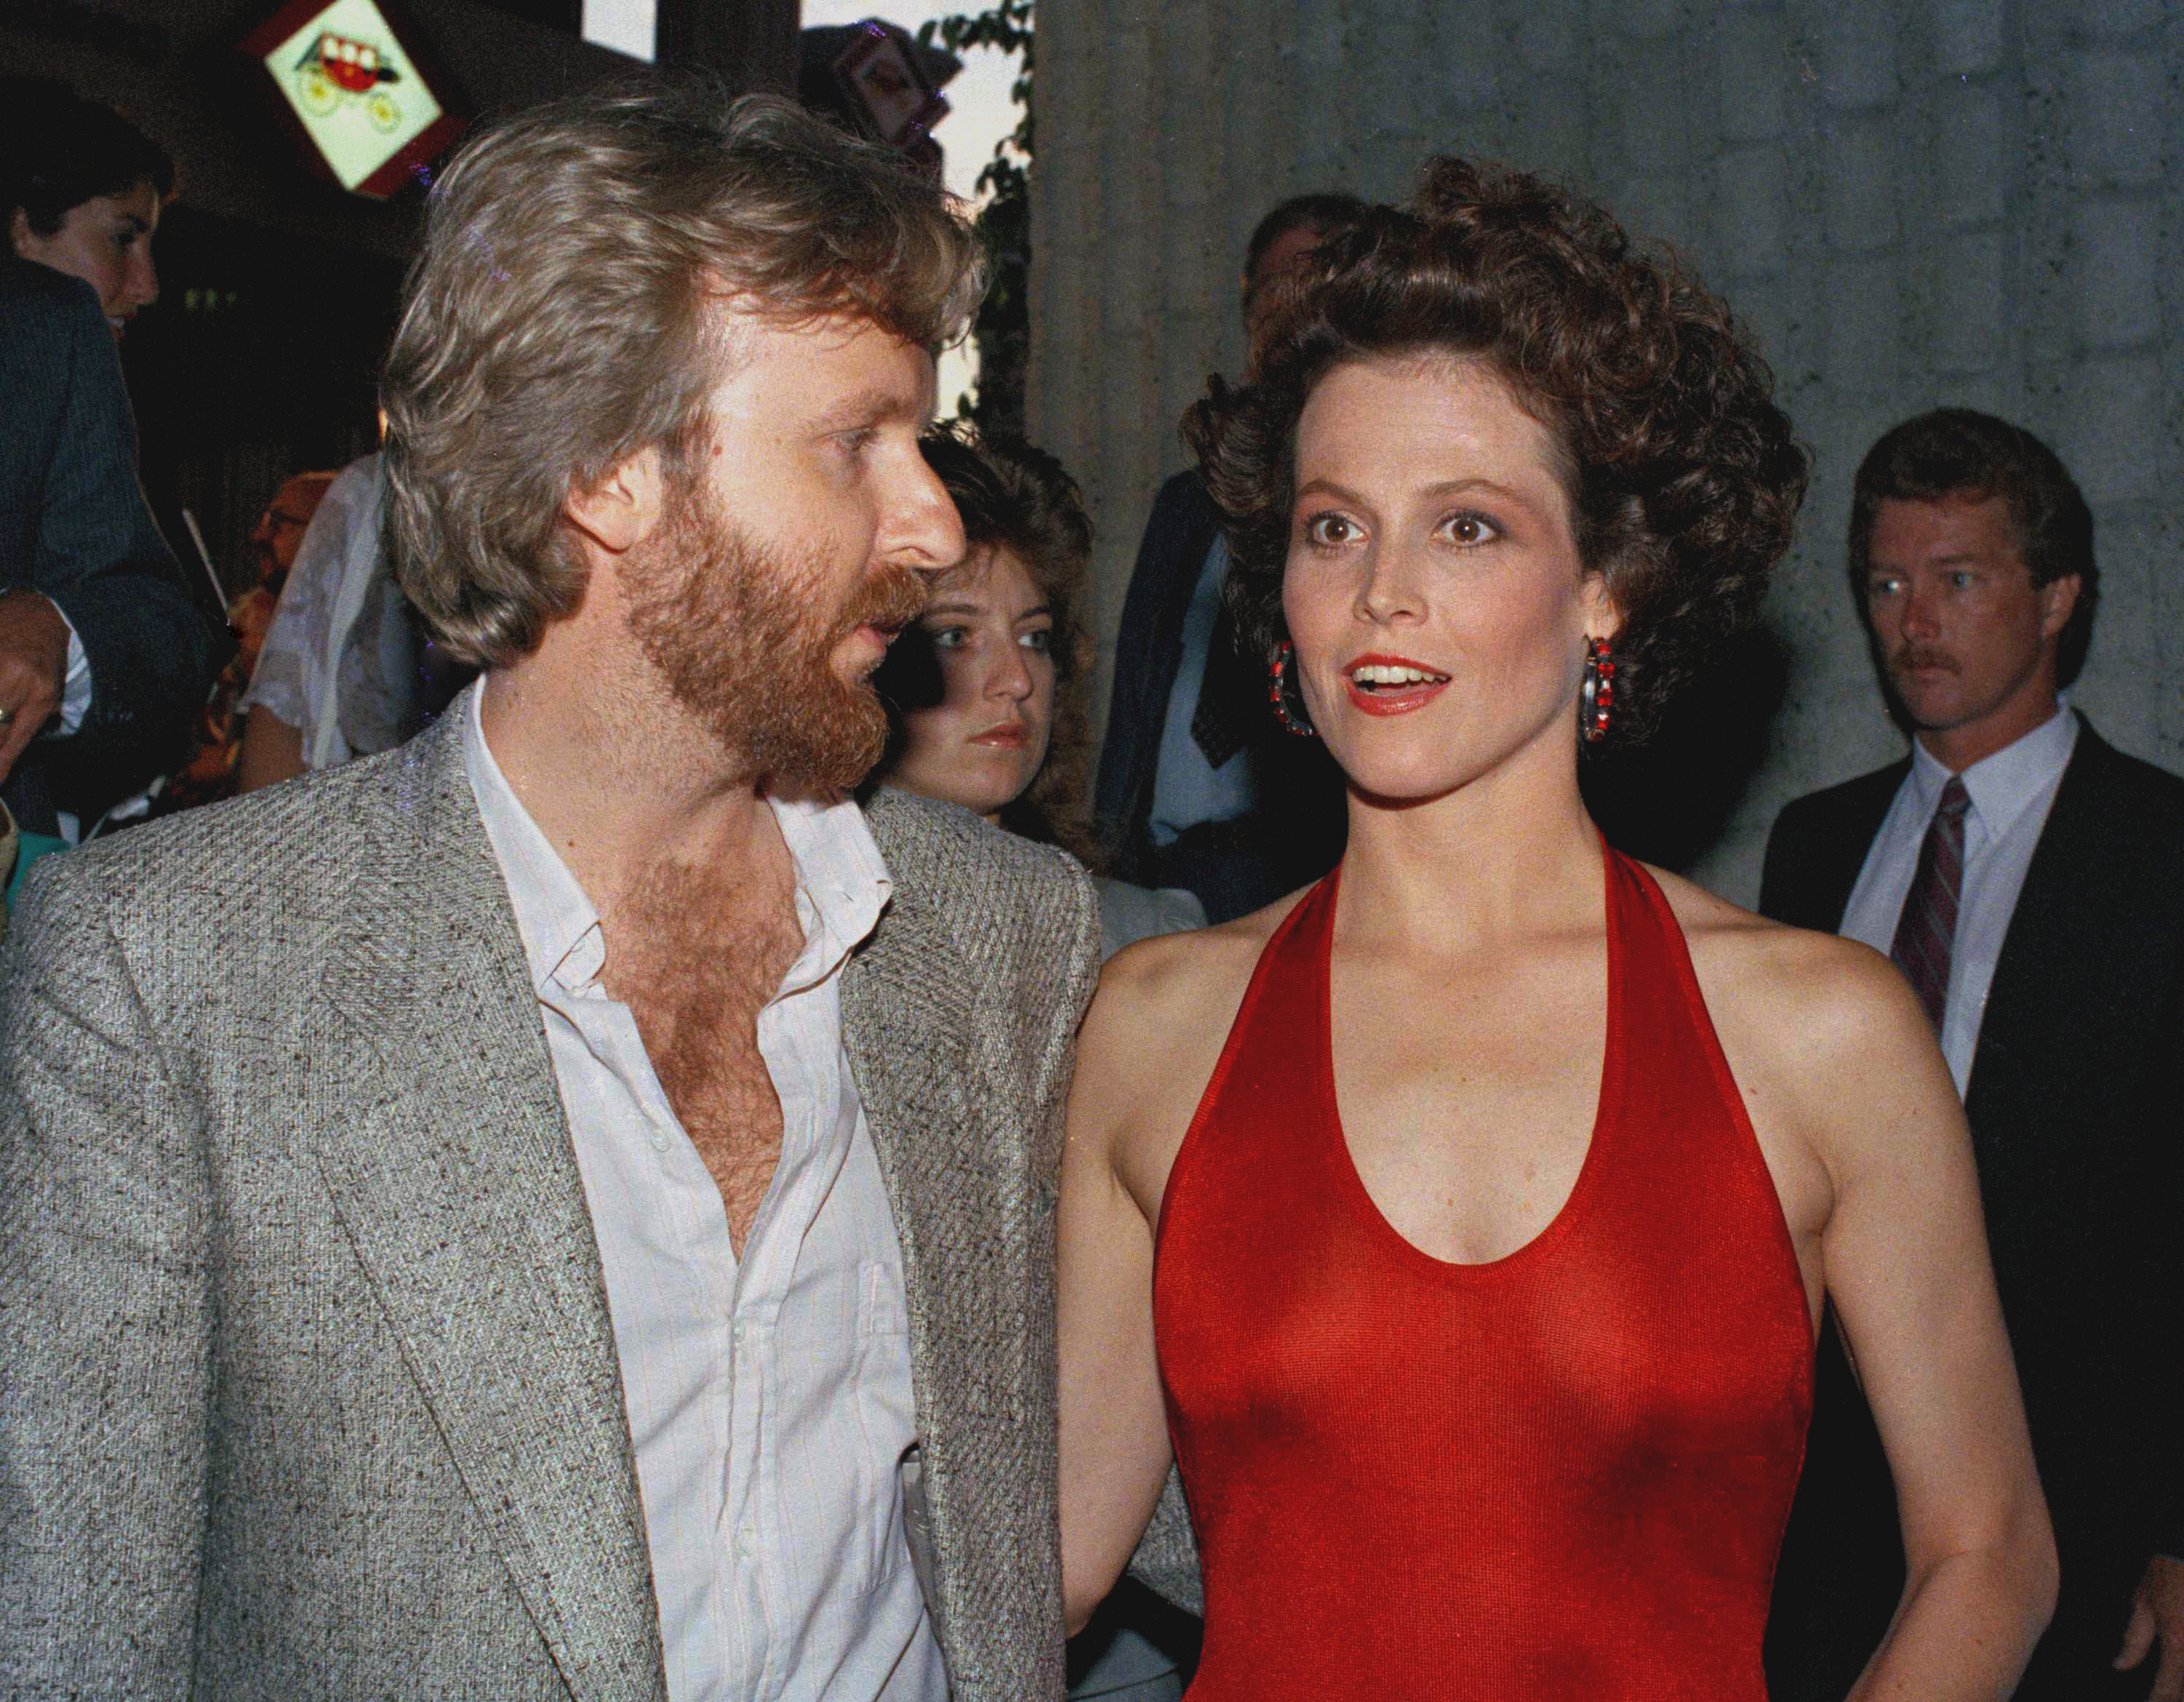 sigourney dating Sigourney weaver and her role in alien represented what today is known as the strong, modern and independent women how would it be to date a woman like her.